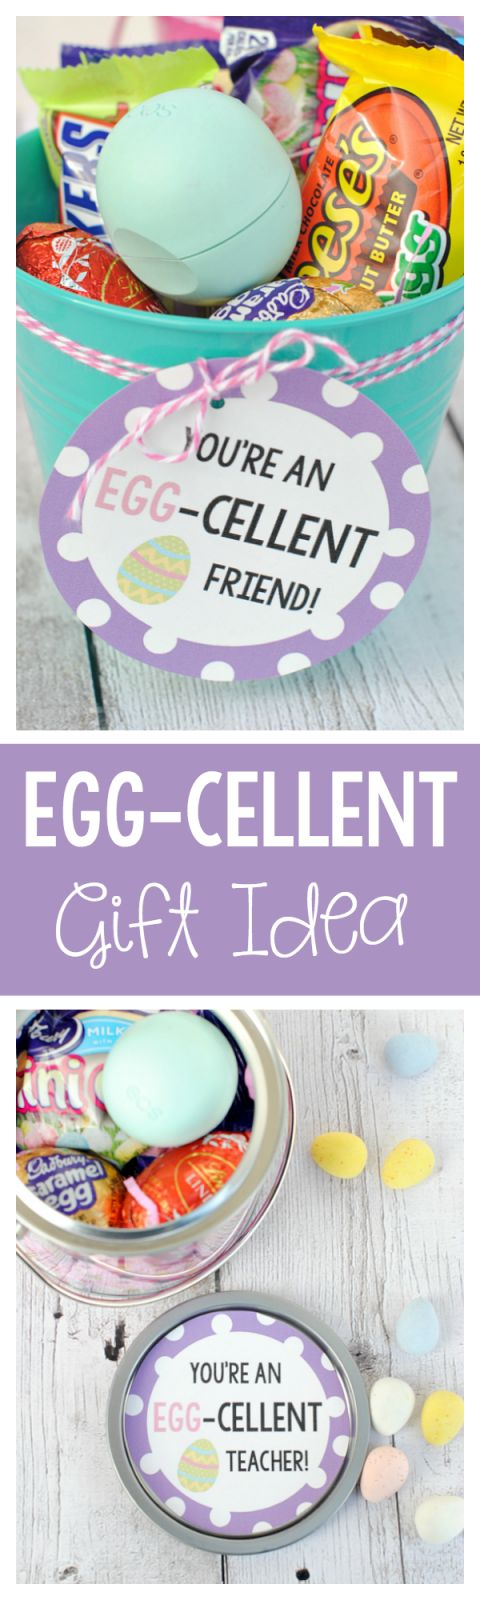 77 best images about easter on pinterest egg cellent easter gift idea negle Images